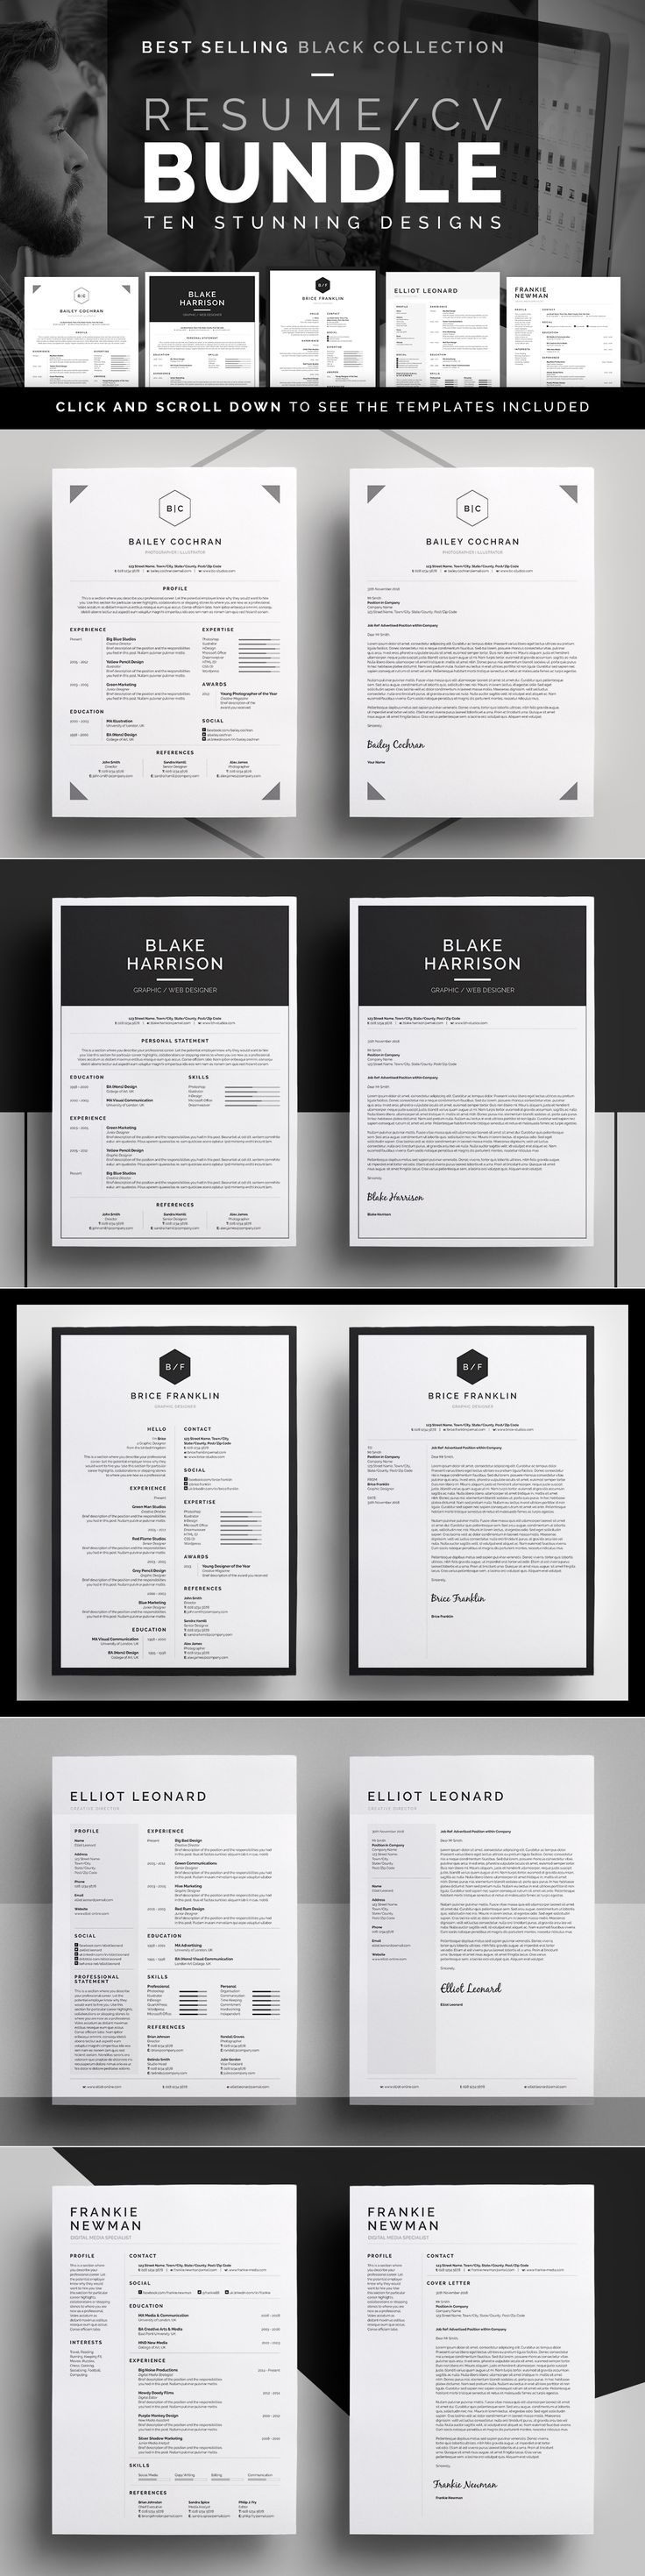 163 best resume images on Pinterest